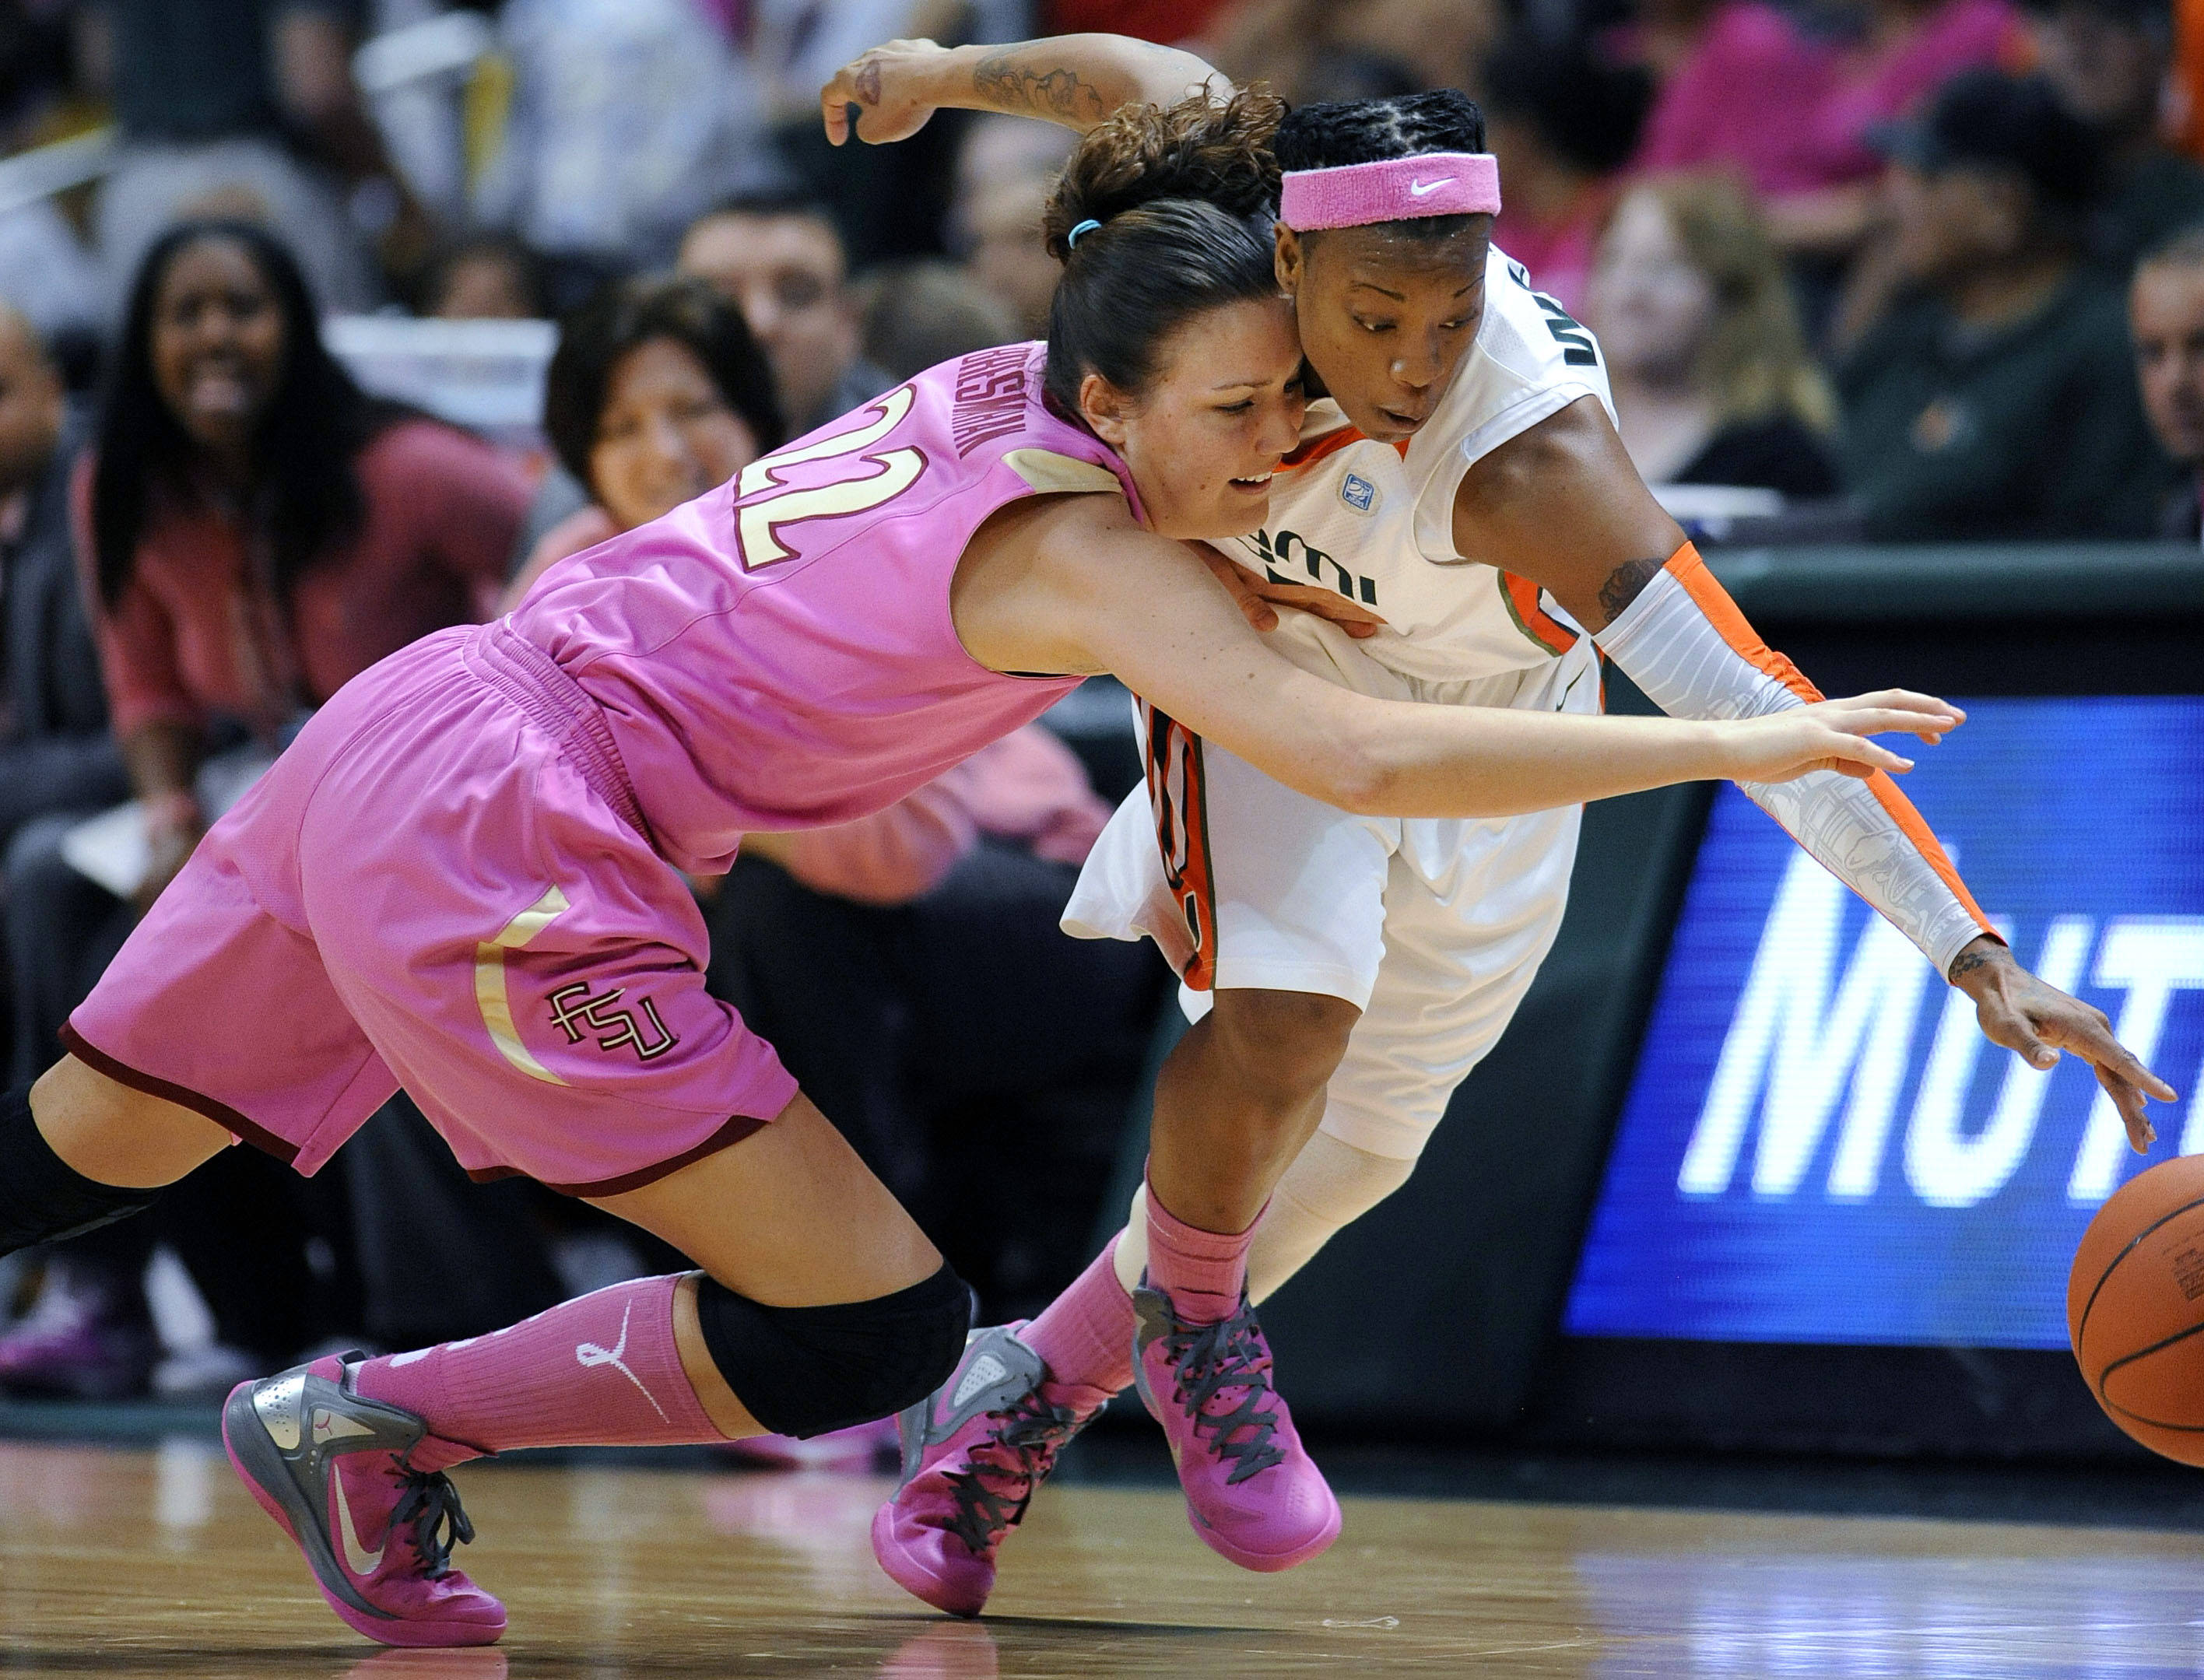 Miami's Riquna Williams, right, and Florida State's Olivia Bresnahan, left, reach for a loose ball during the first half of an NCAA college basketball game on Sunday, Feb. 19, 2012, in Coral Gables, Fla. (AP Photo/Rhona Wise)